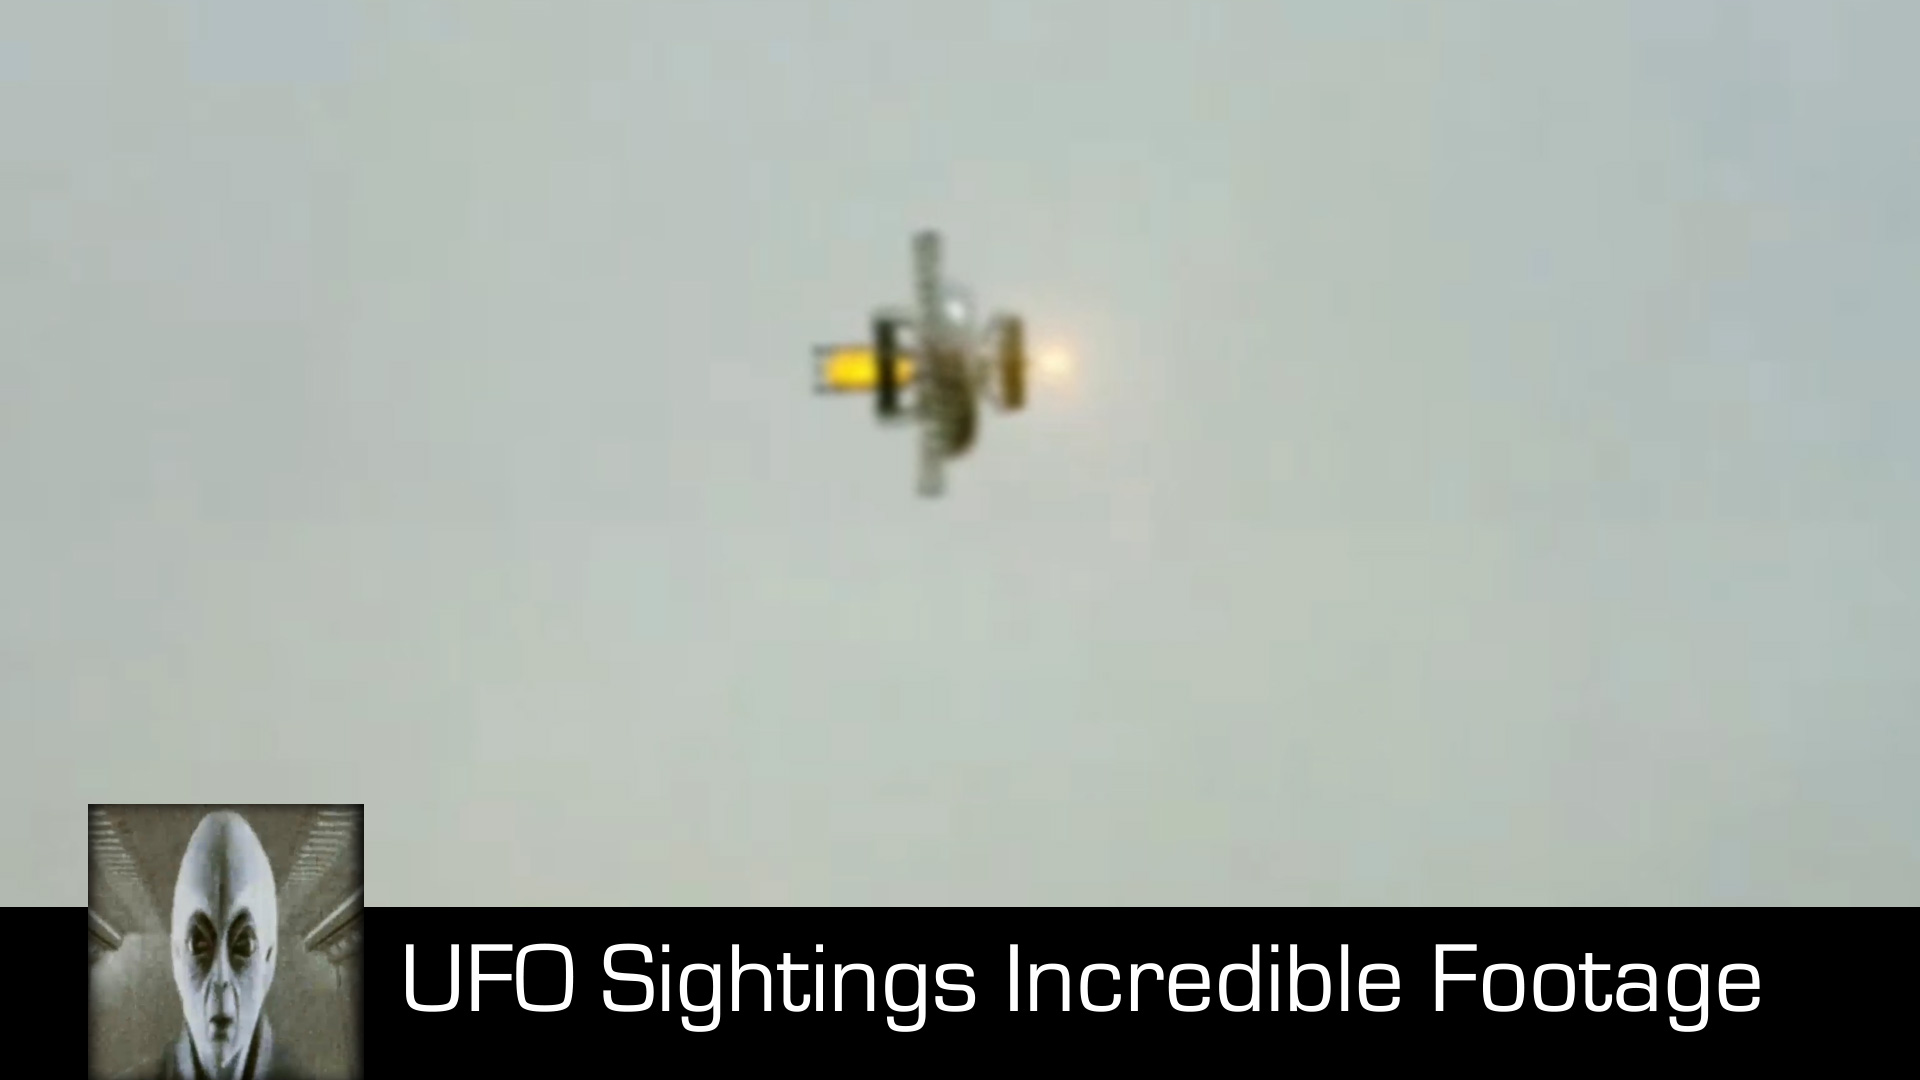 UFO Sightings Incredible Footage October 7th 2017